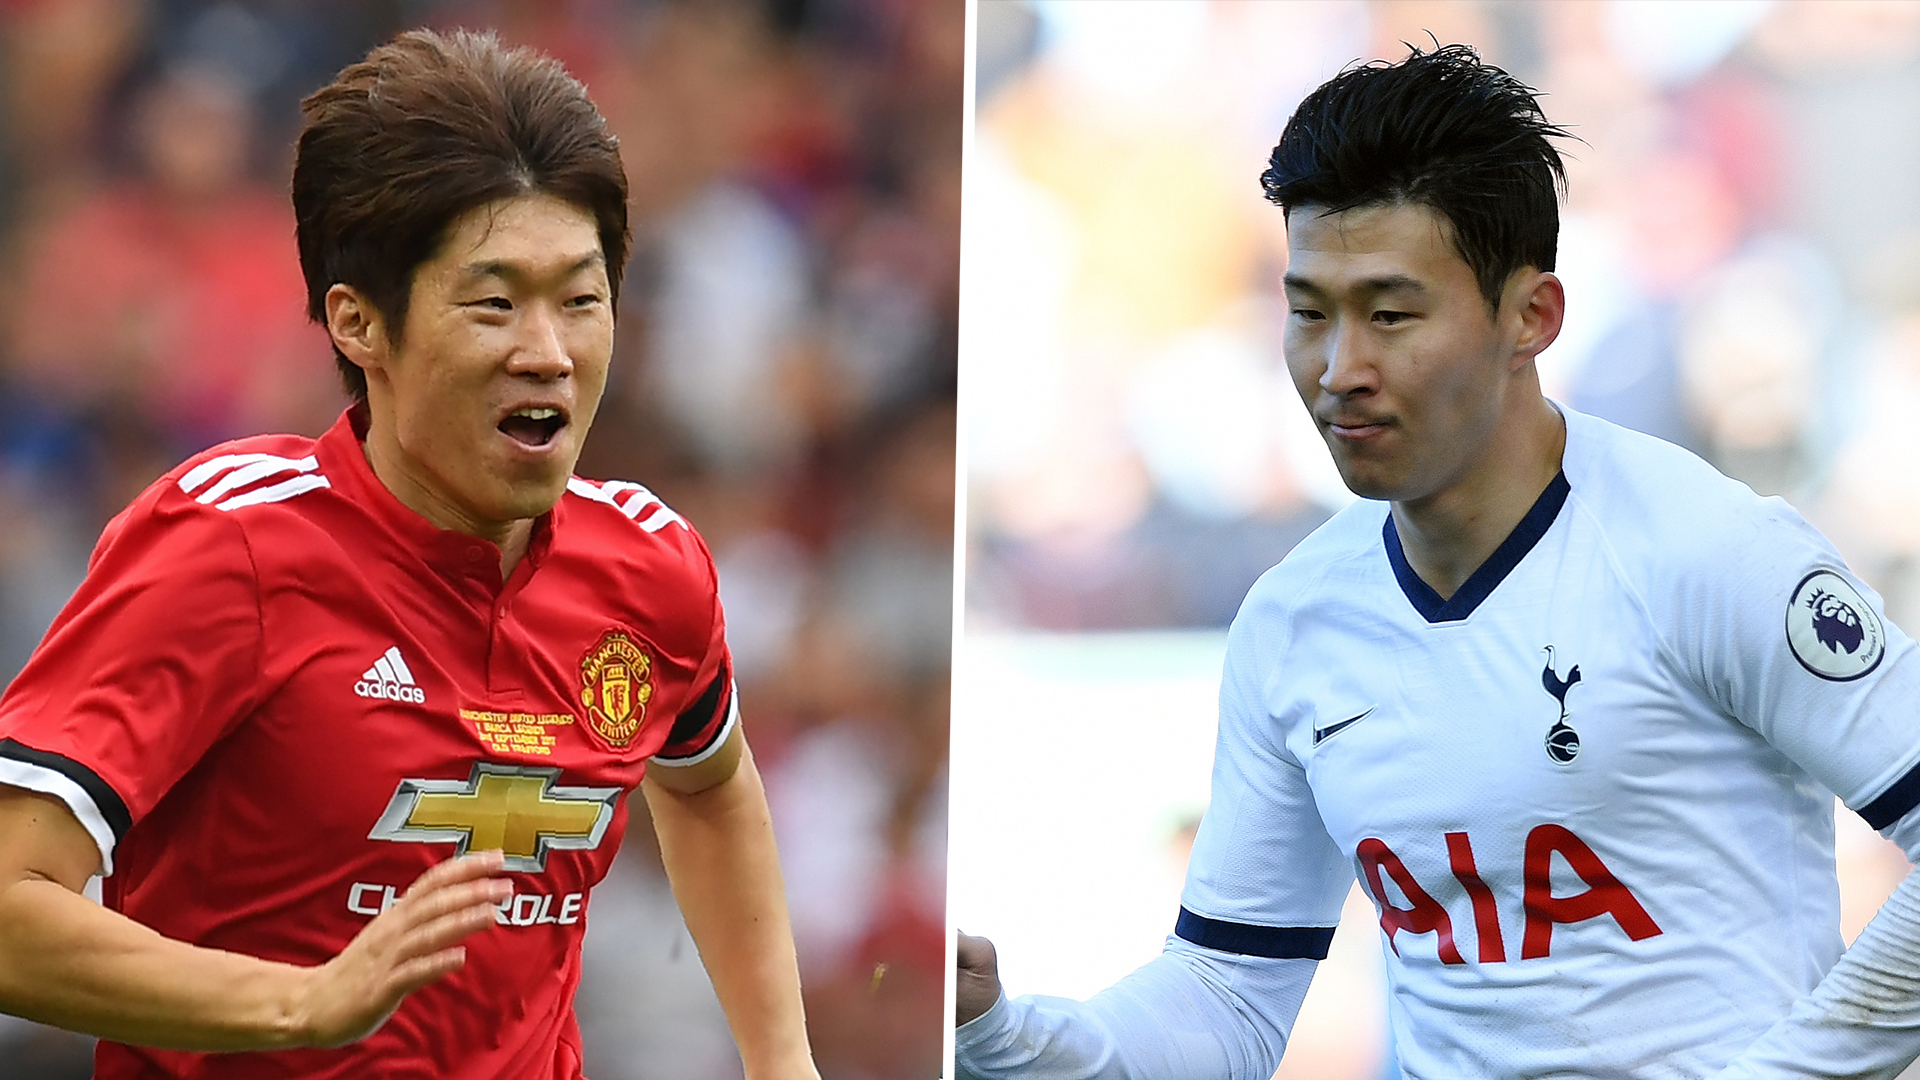 Park Ji-sung and Son Heung-min donate to South Korean victims of coronavirus